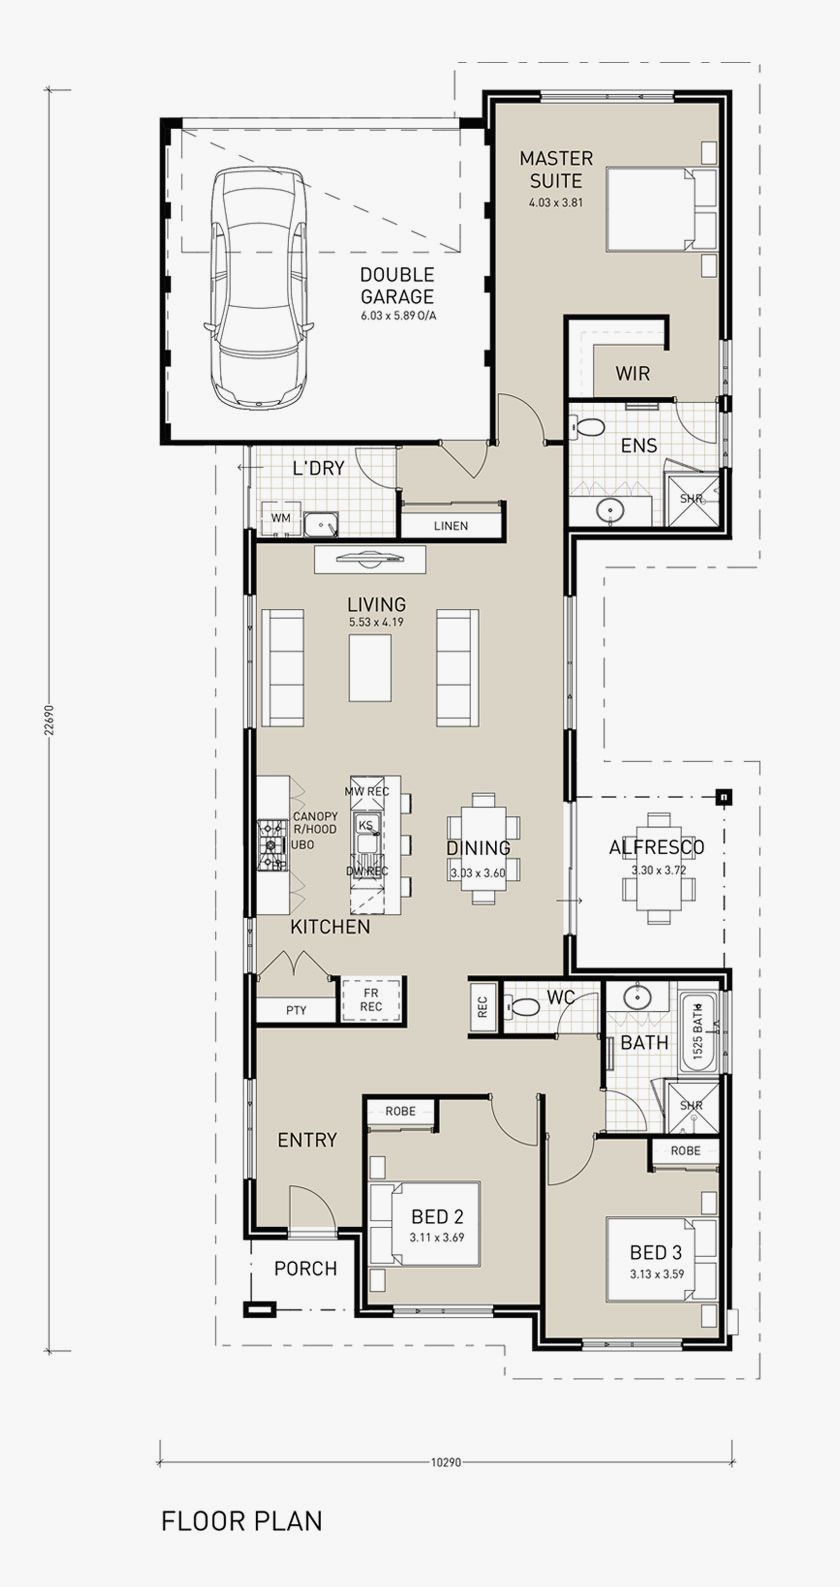 House Plans Narrow Lot New 3 Storey House Plans for Small Lots Elegant Narrow Lot House